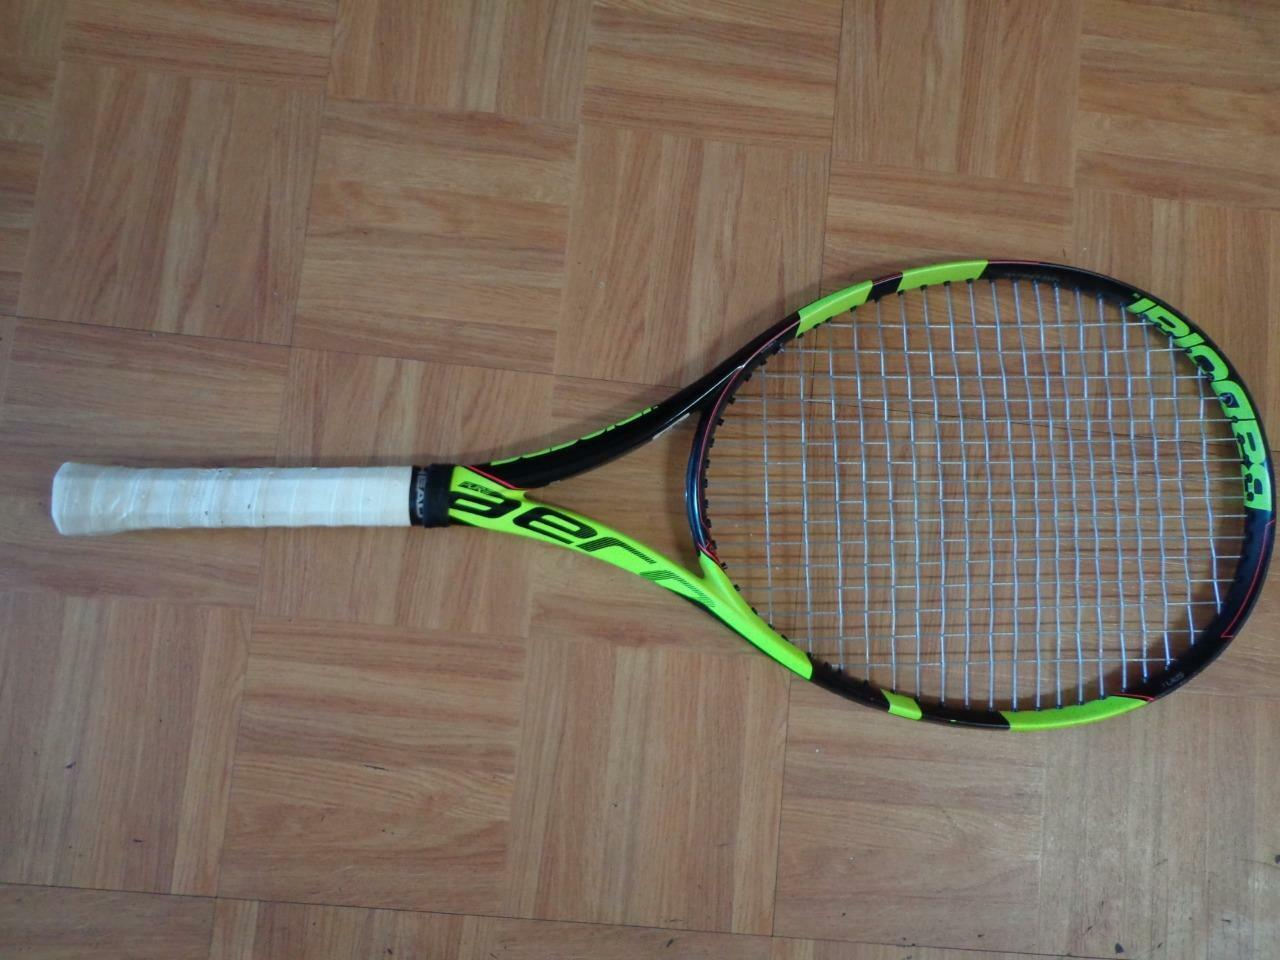 Babolat Pure Aero TOUR 100 head 4 3 8 grip grip 11.1oz Tennis Racquet